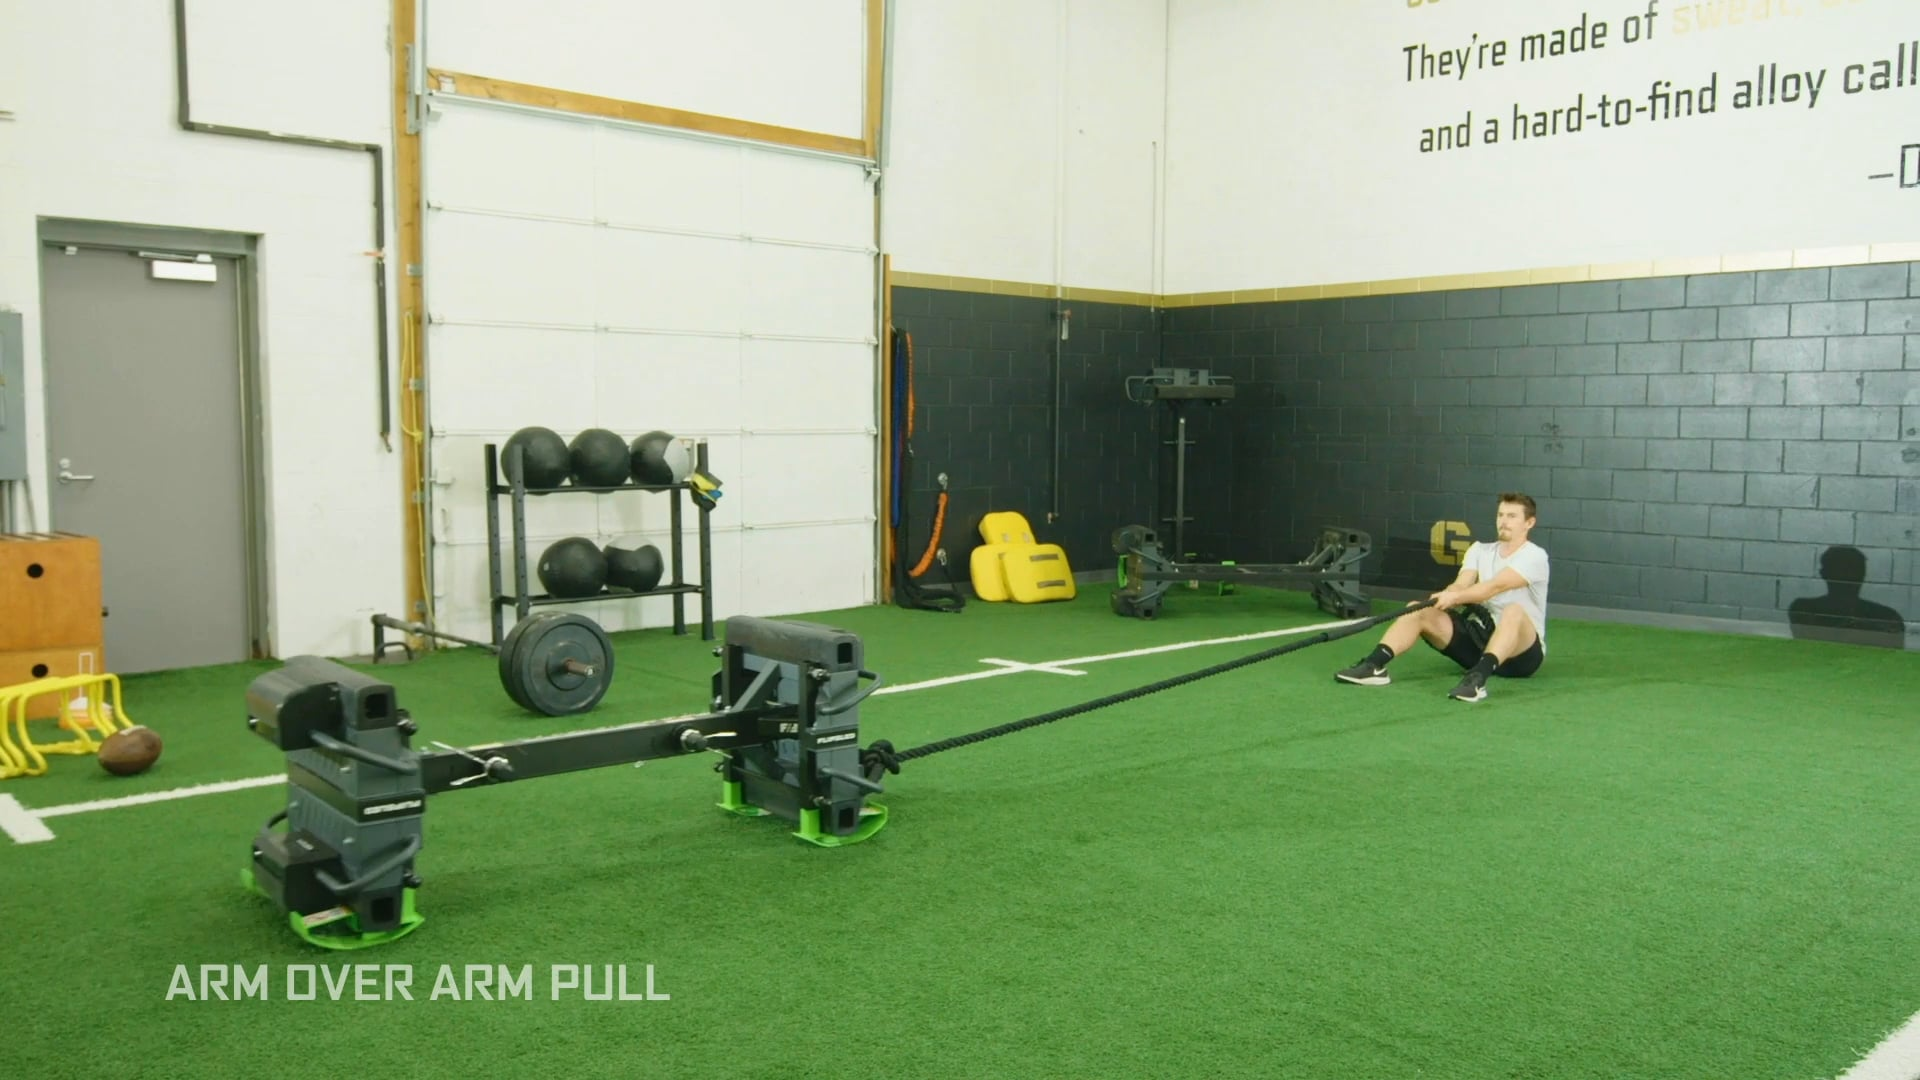 Arm Over Arm Pull